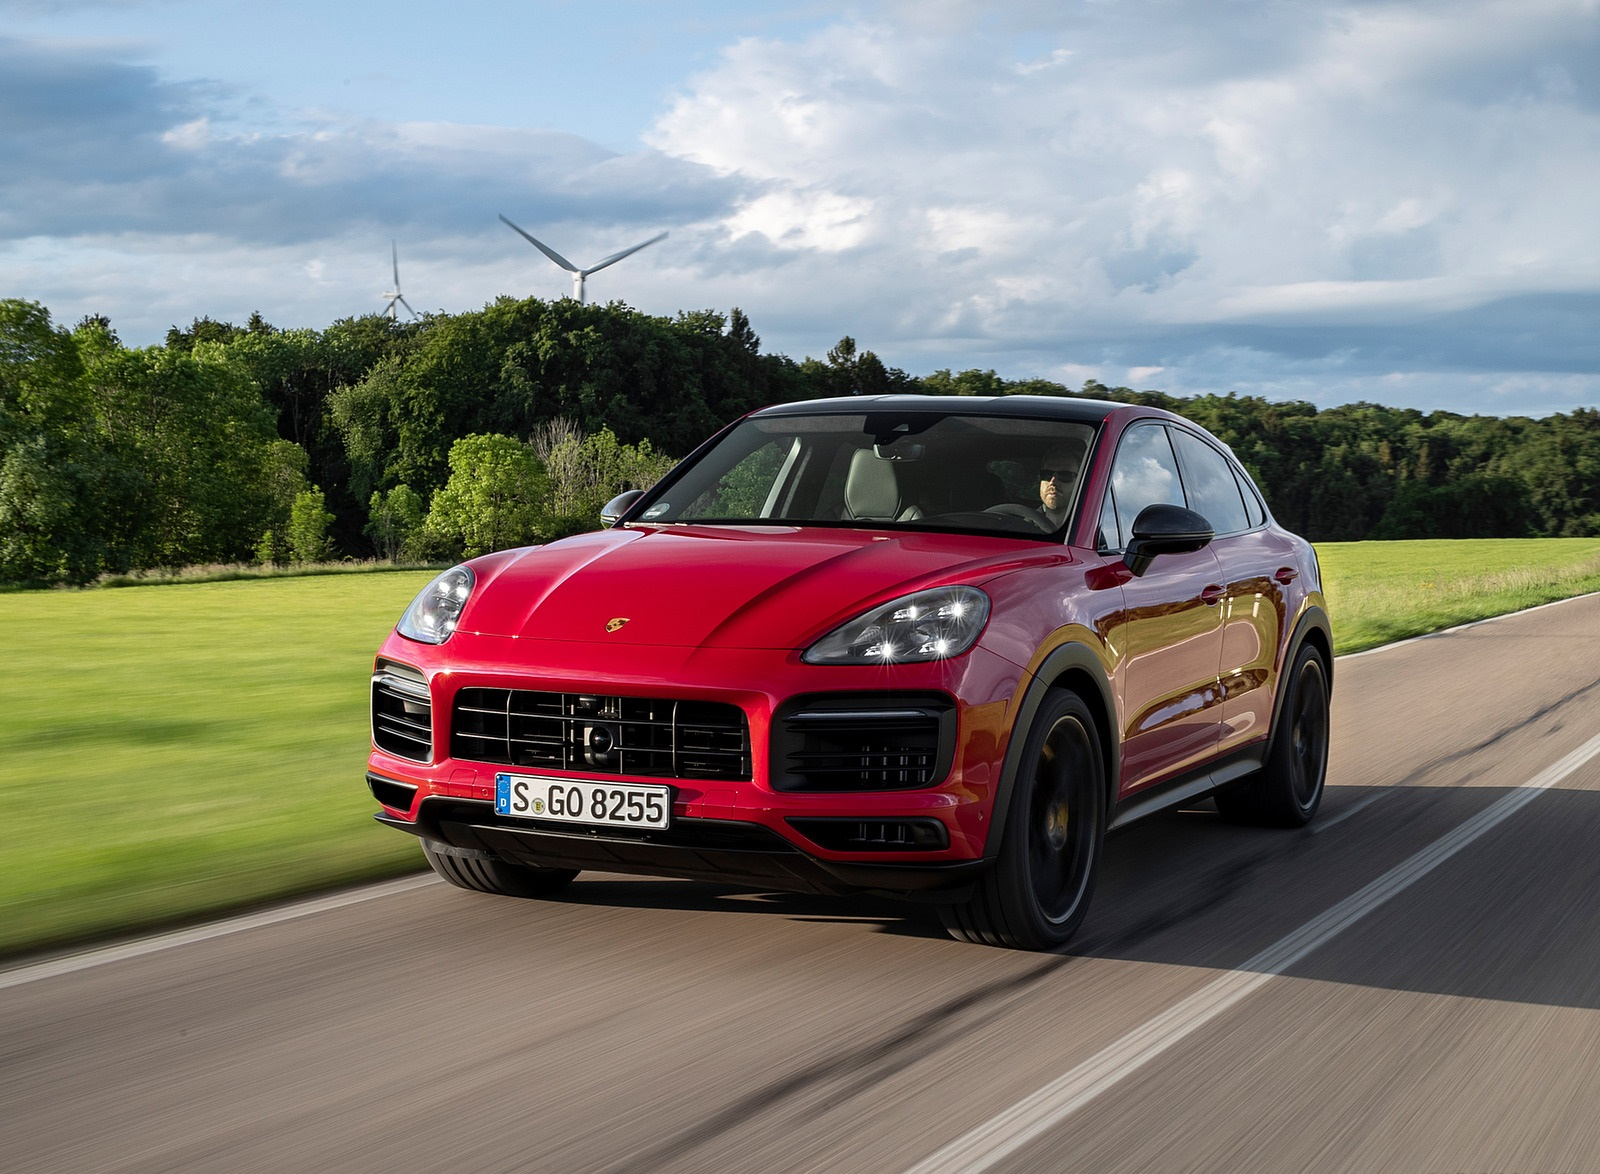 2021 Porsche Cayenne Gts Coupe Wallpapers 121 Hd Images Newcarcars